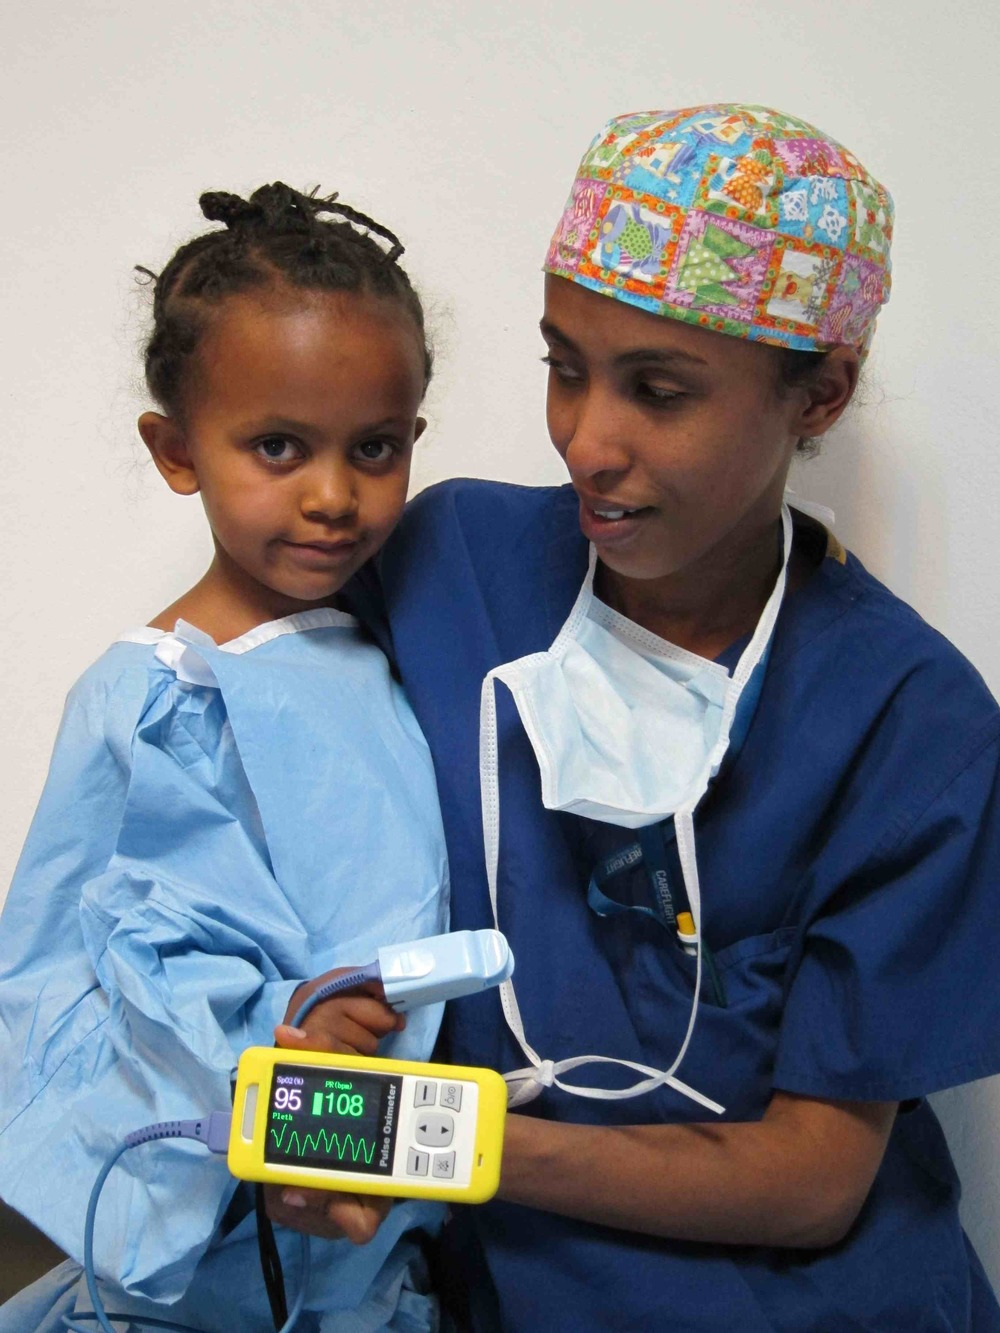 AAGBI-donation-Black-Lion-Addis_2011_Ethiopia_chain-of-hope-15_oximetry-patient.jpg